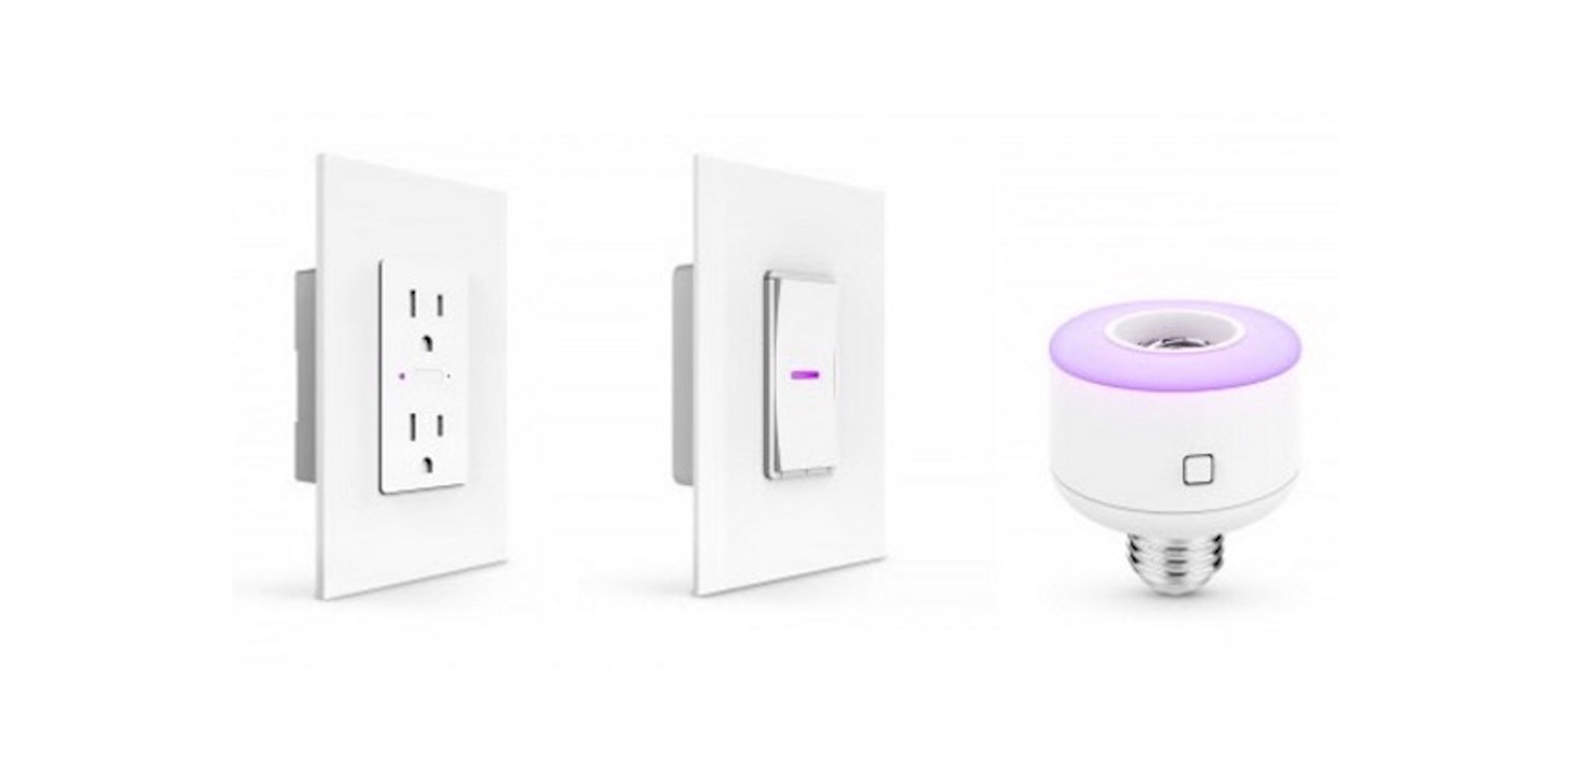 iDevices is really serious about this Internet of Things stuff.